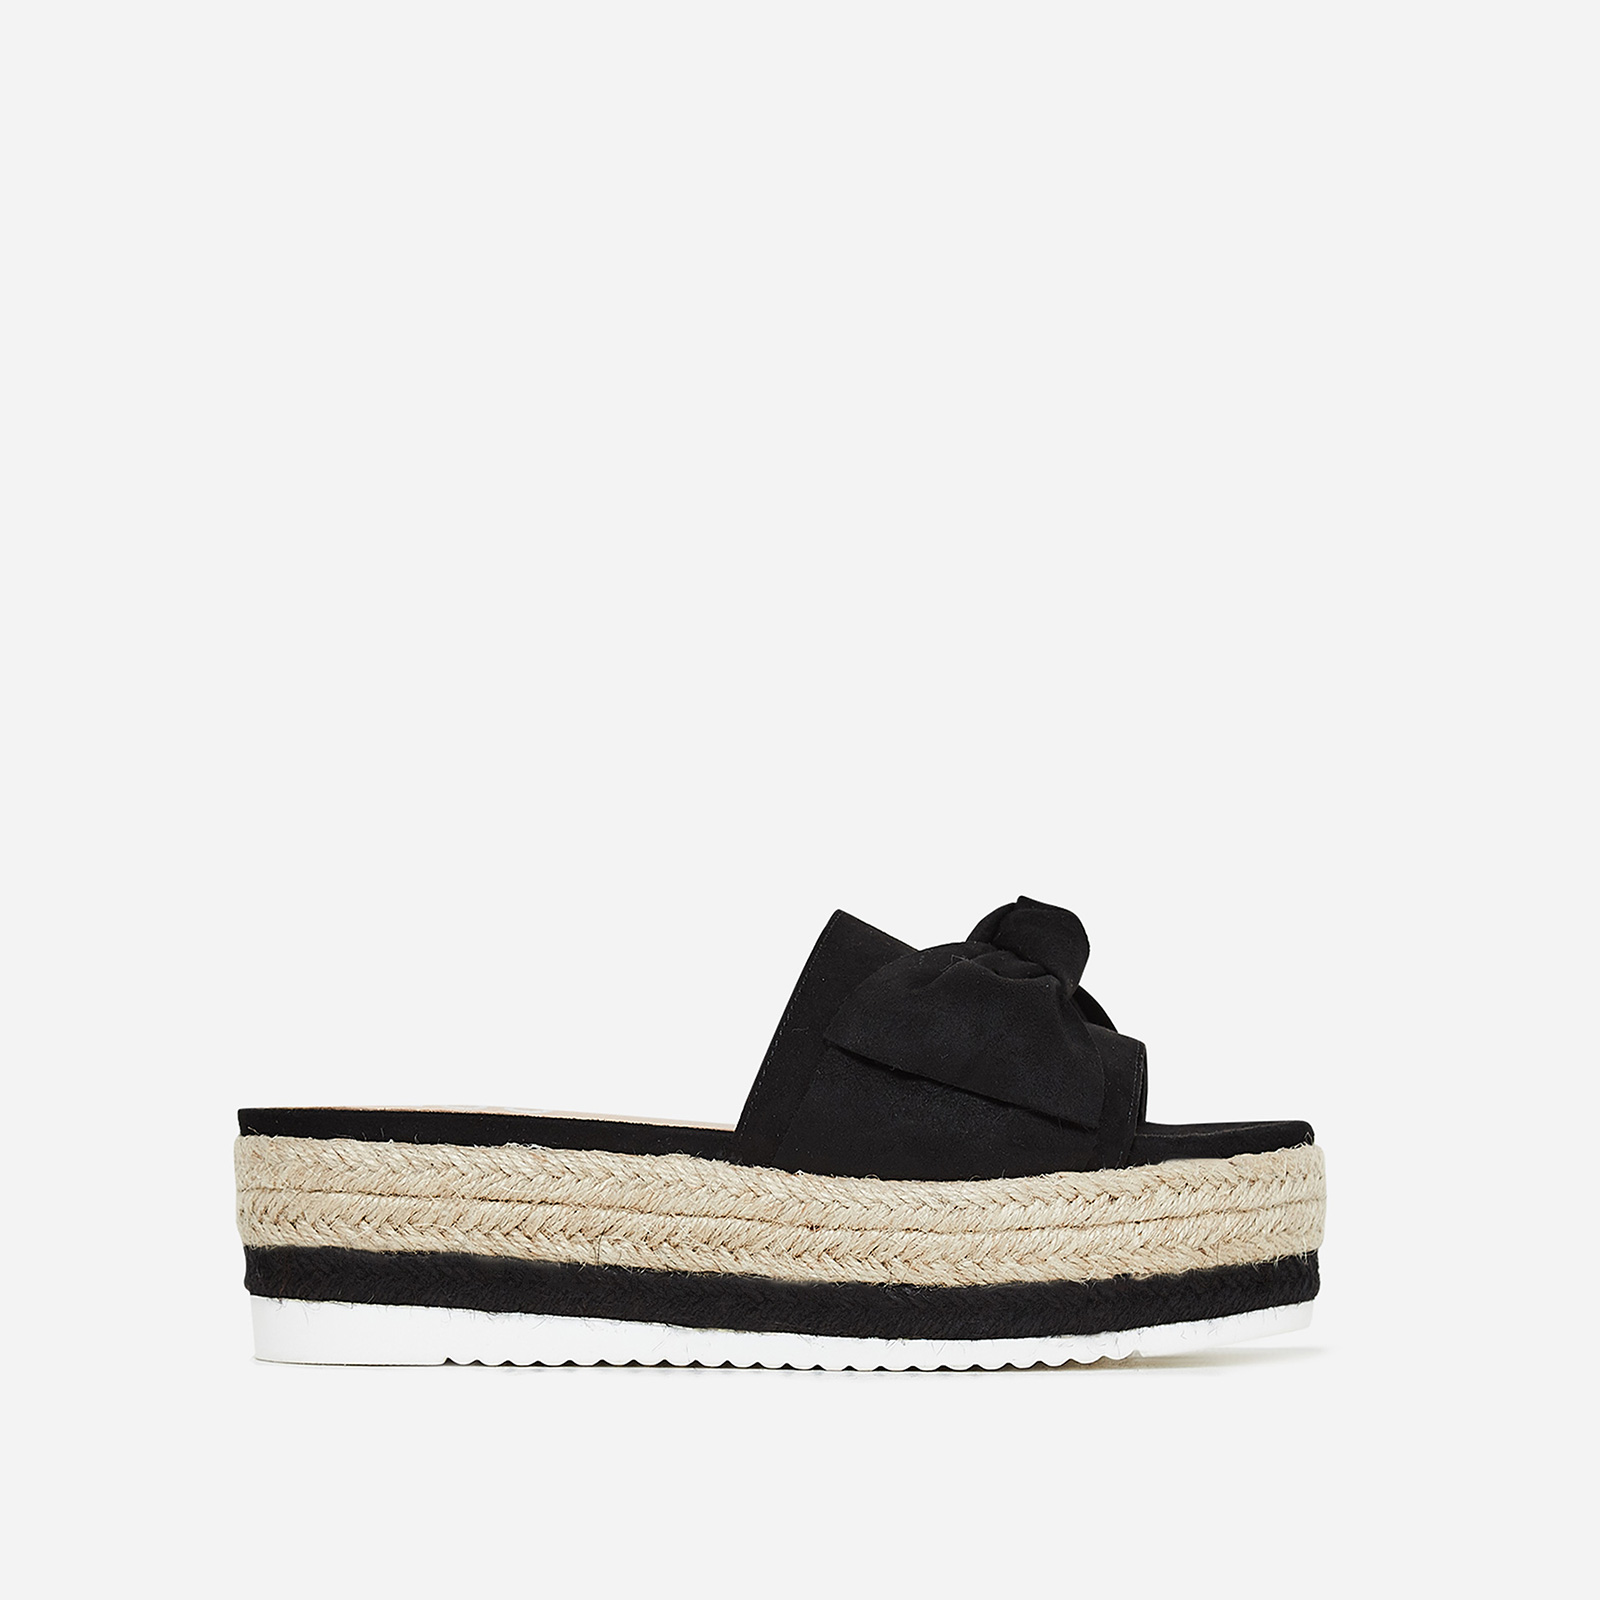 Fergie Bow Detail Espadrille Slider In Black Faux Suede